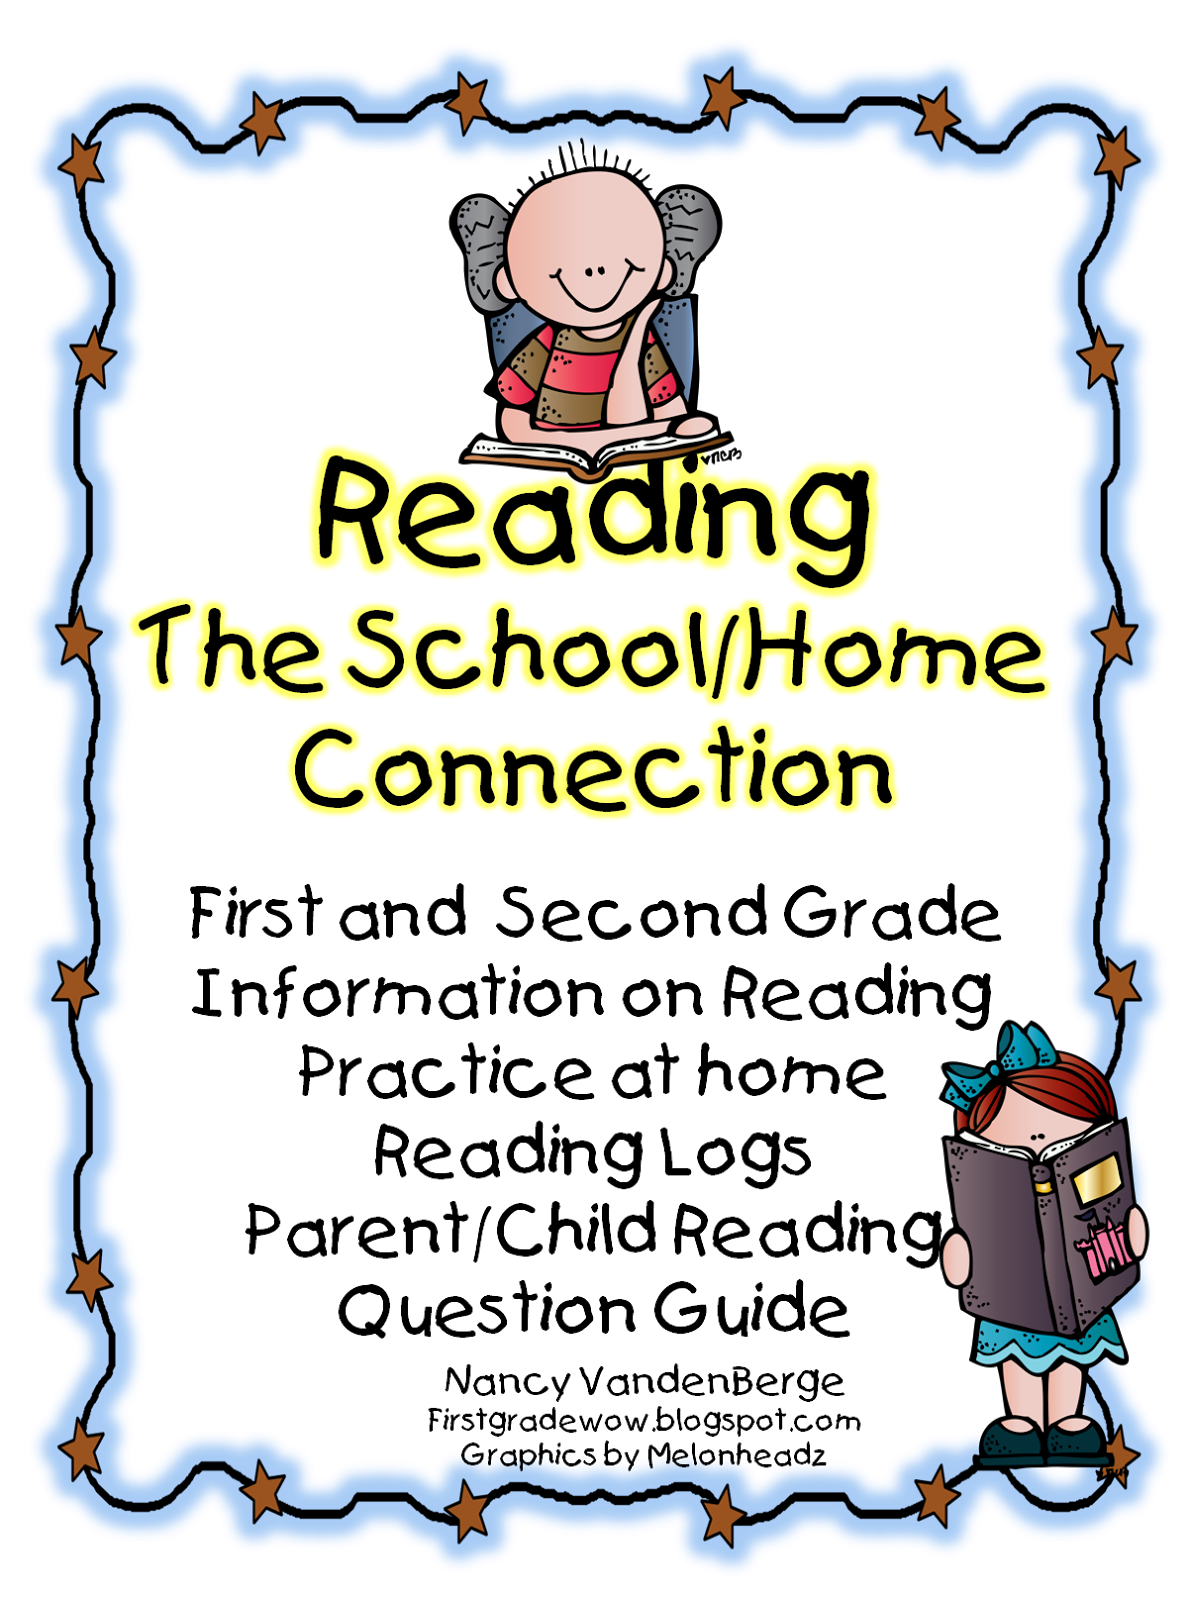 Worksheets School Home Connection Worksheets reading the schoolhome connection first grade wow bloglovin connection